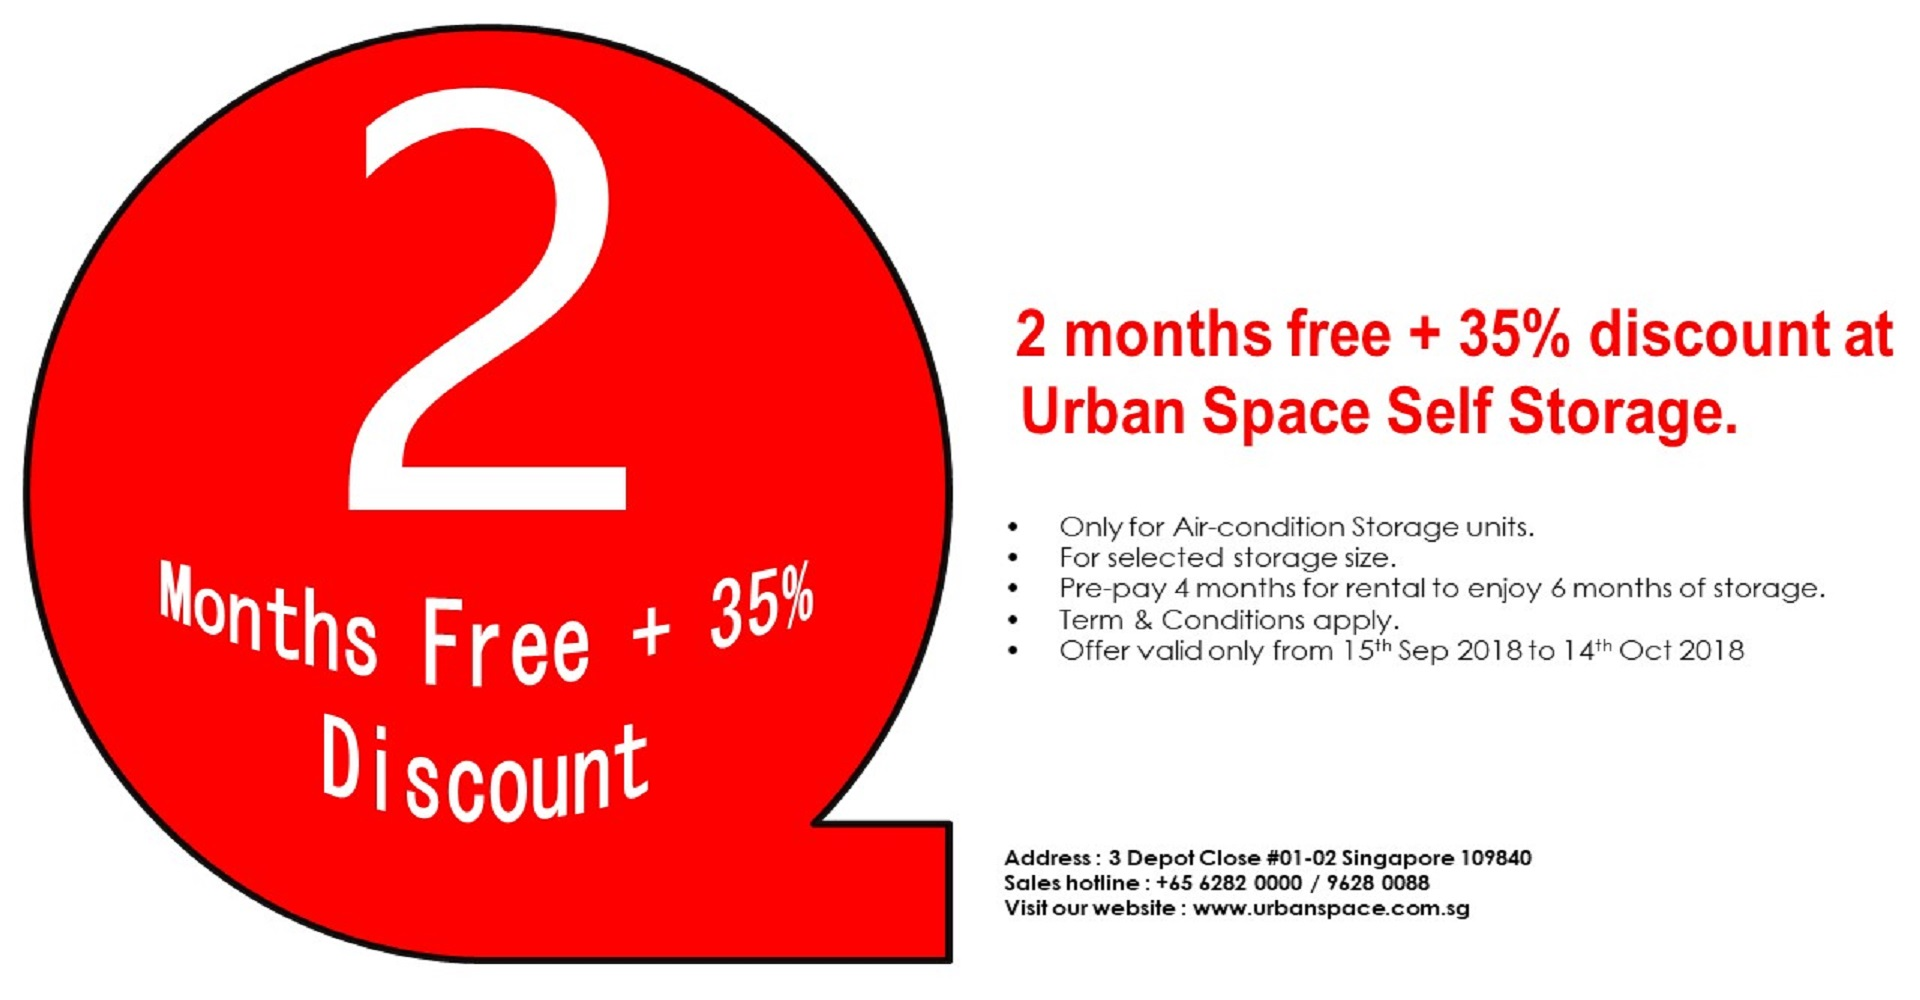 <b>2 months free + 35% discount at  Urban Space Self Storage</b>